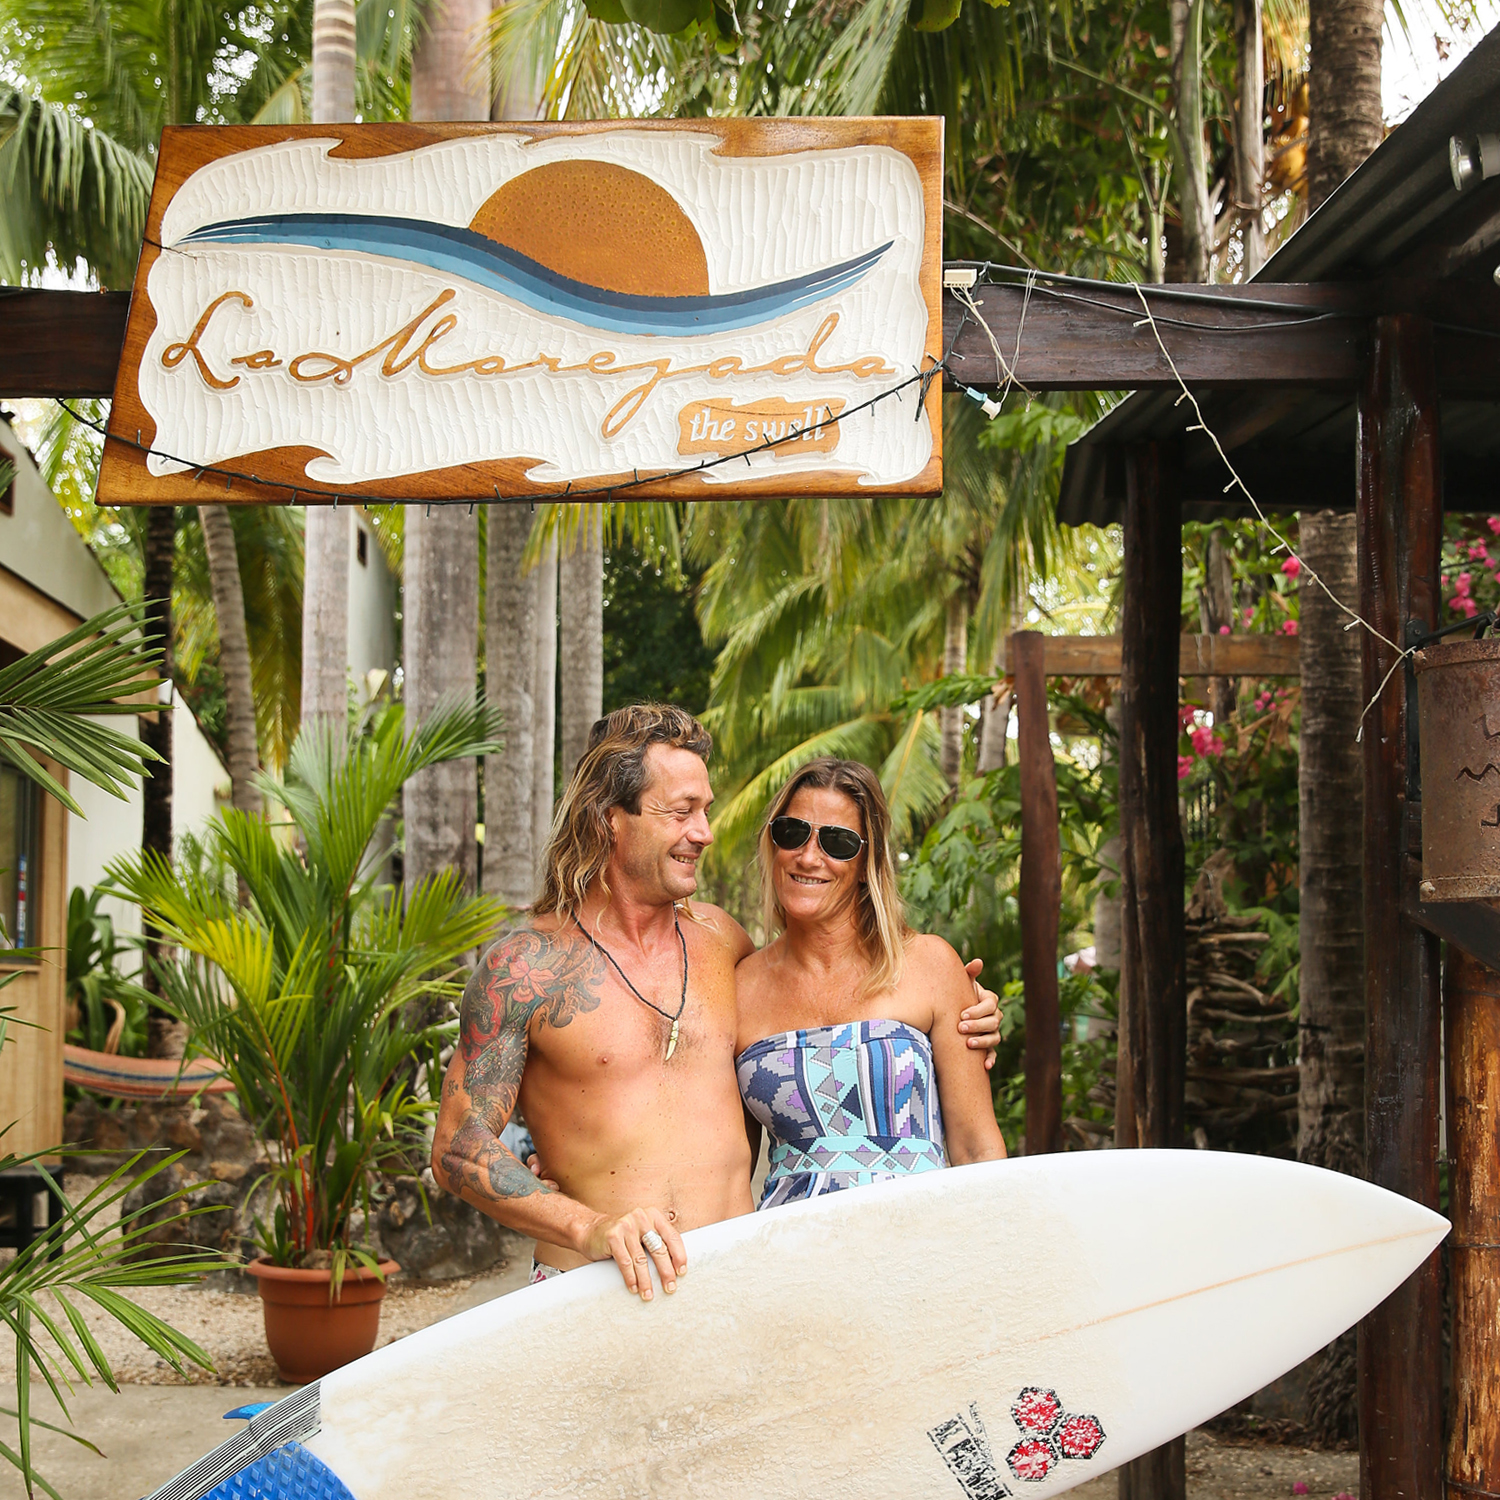 GAIL + MARCO - Owners of hotel y restaurante la marejada + our momPlaya Grande is one of the most consistent surf breaks in Costa Rica located in the northern province of Guanacaste. It is a marine sanctuary created to protect giant leatherback turtles that lay their eggs along the dunes here. The beach is four miles long with waves in both directions creating the perfect place to learn to surf.